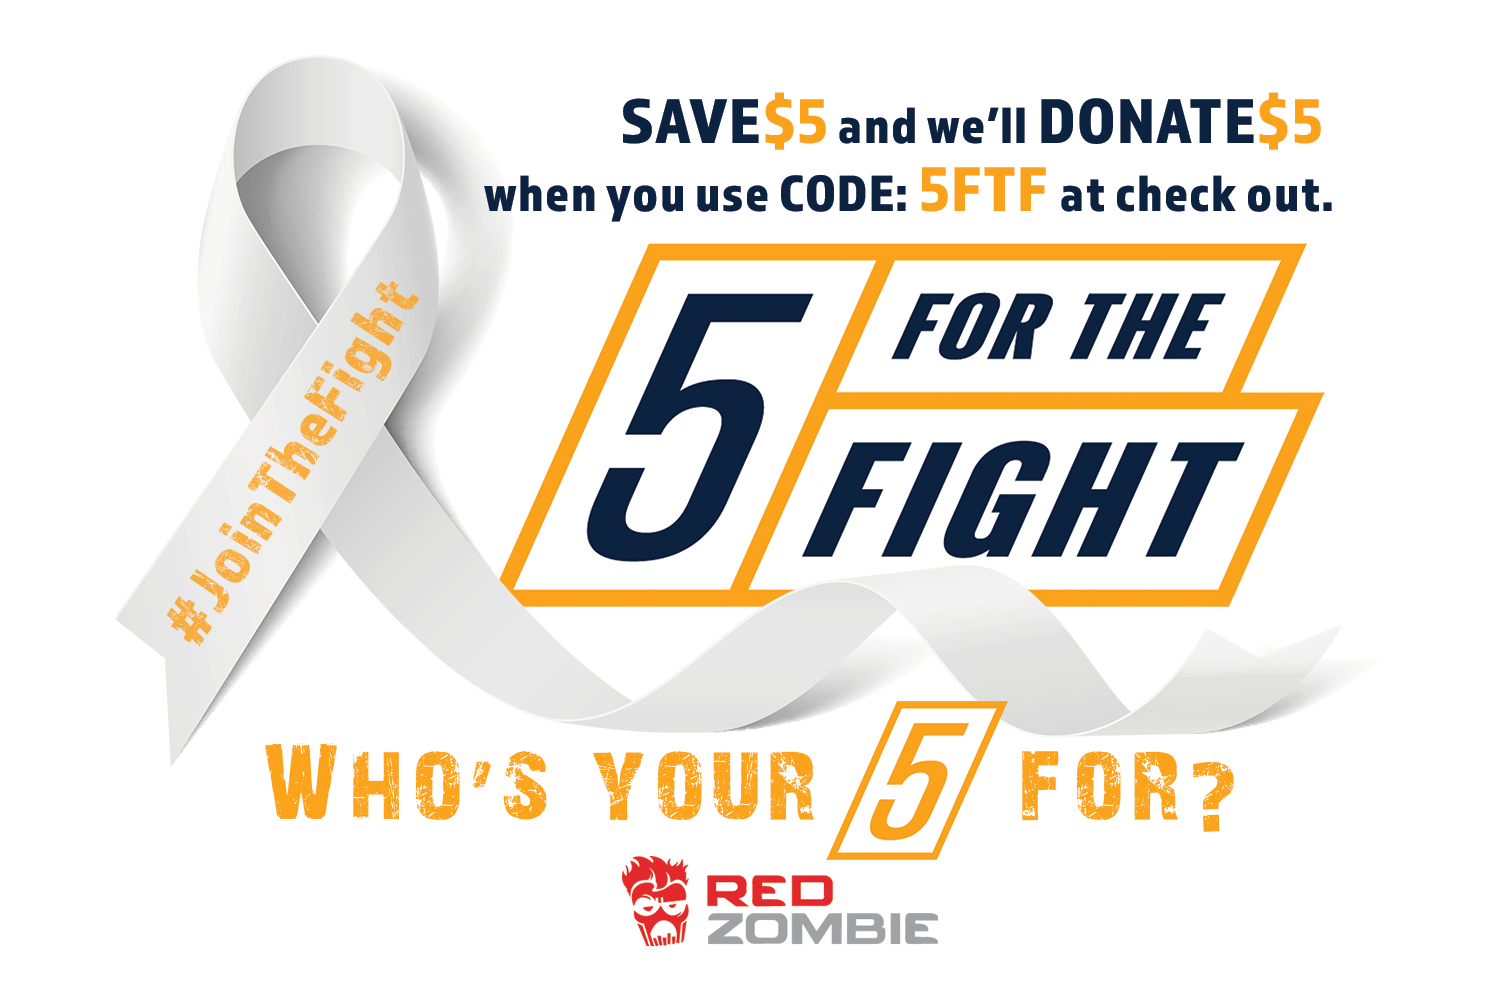 Red Zombie will donate $5 for every purchase made to the 5 For The Fight Organization